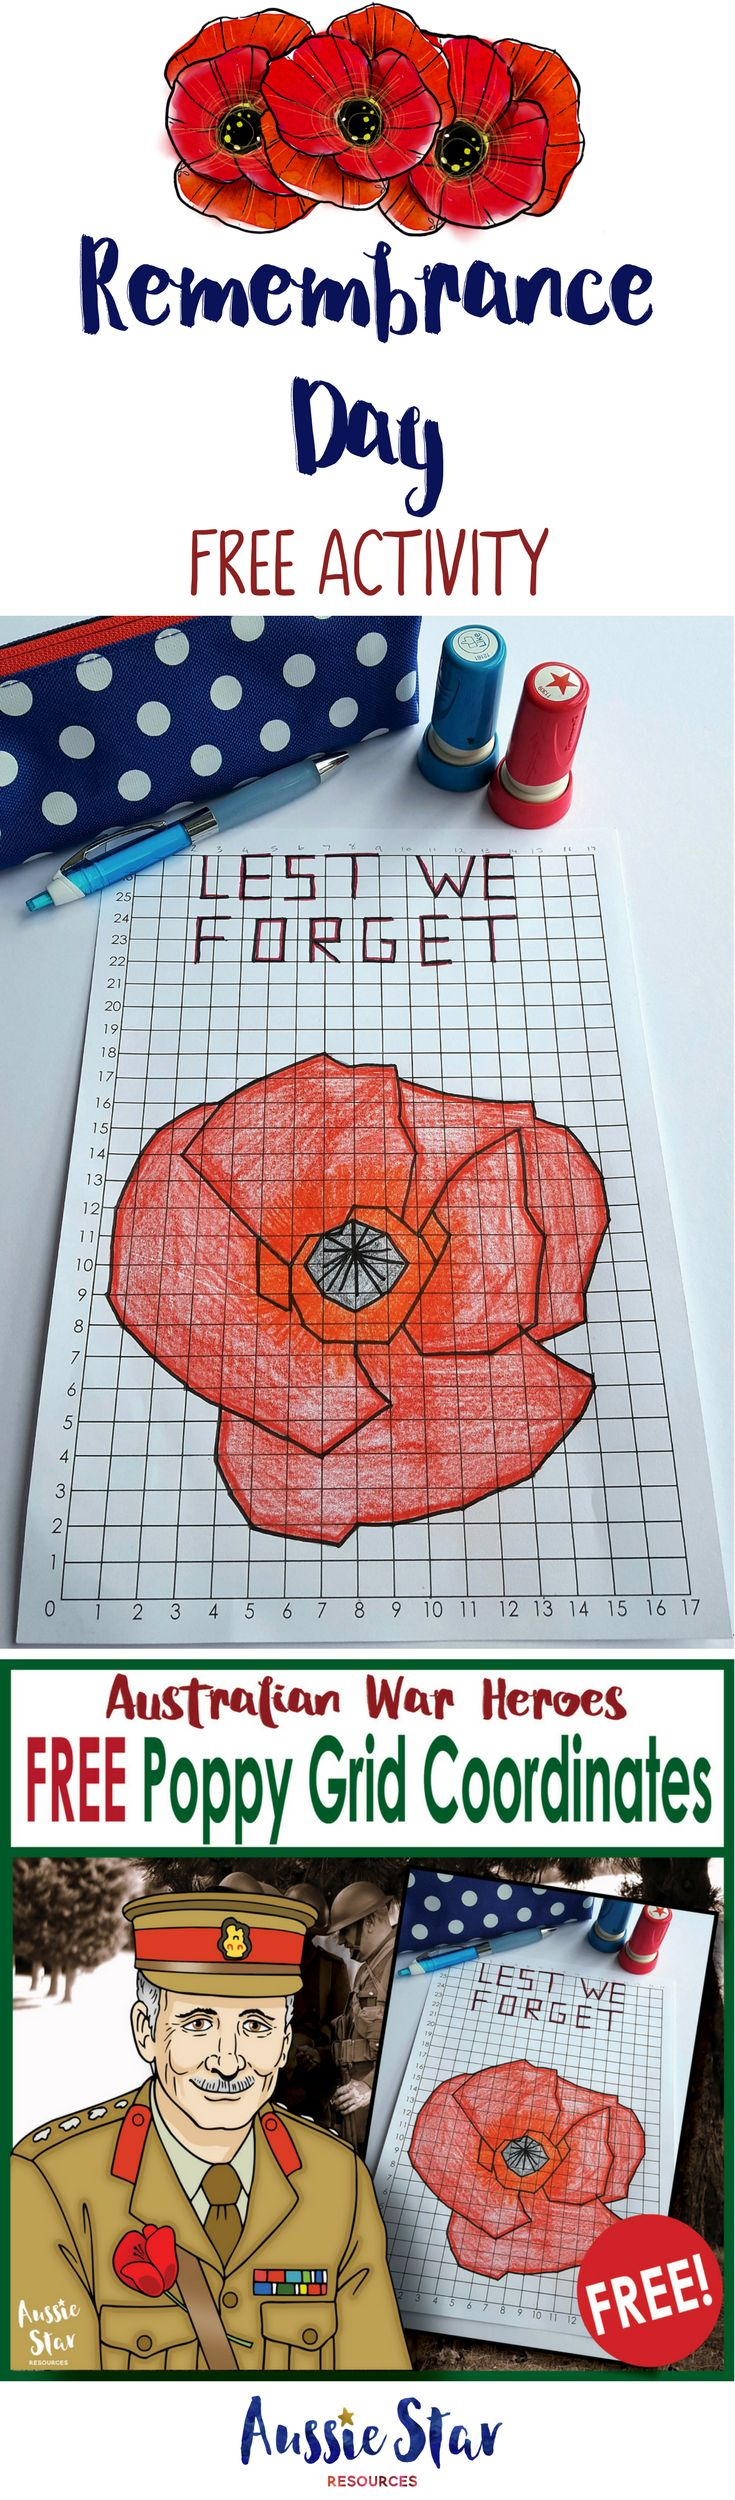 This FREE Remembrance Day teaching resource is a great activity for your upper primary students. This challenging grid coordinates maths activity can be incorporated in to your maths and HASS or History lessons. With 186 steps it will keep your Year 5, 6 & 7 students focused and engaged! Download it for FREE in our store now by clicking on the image.